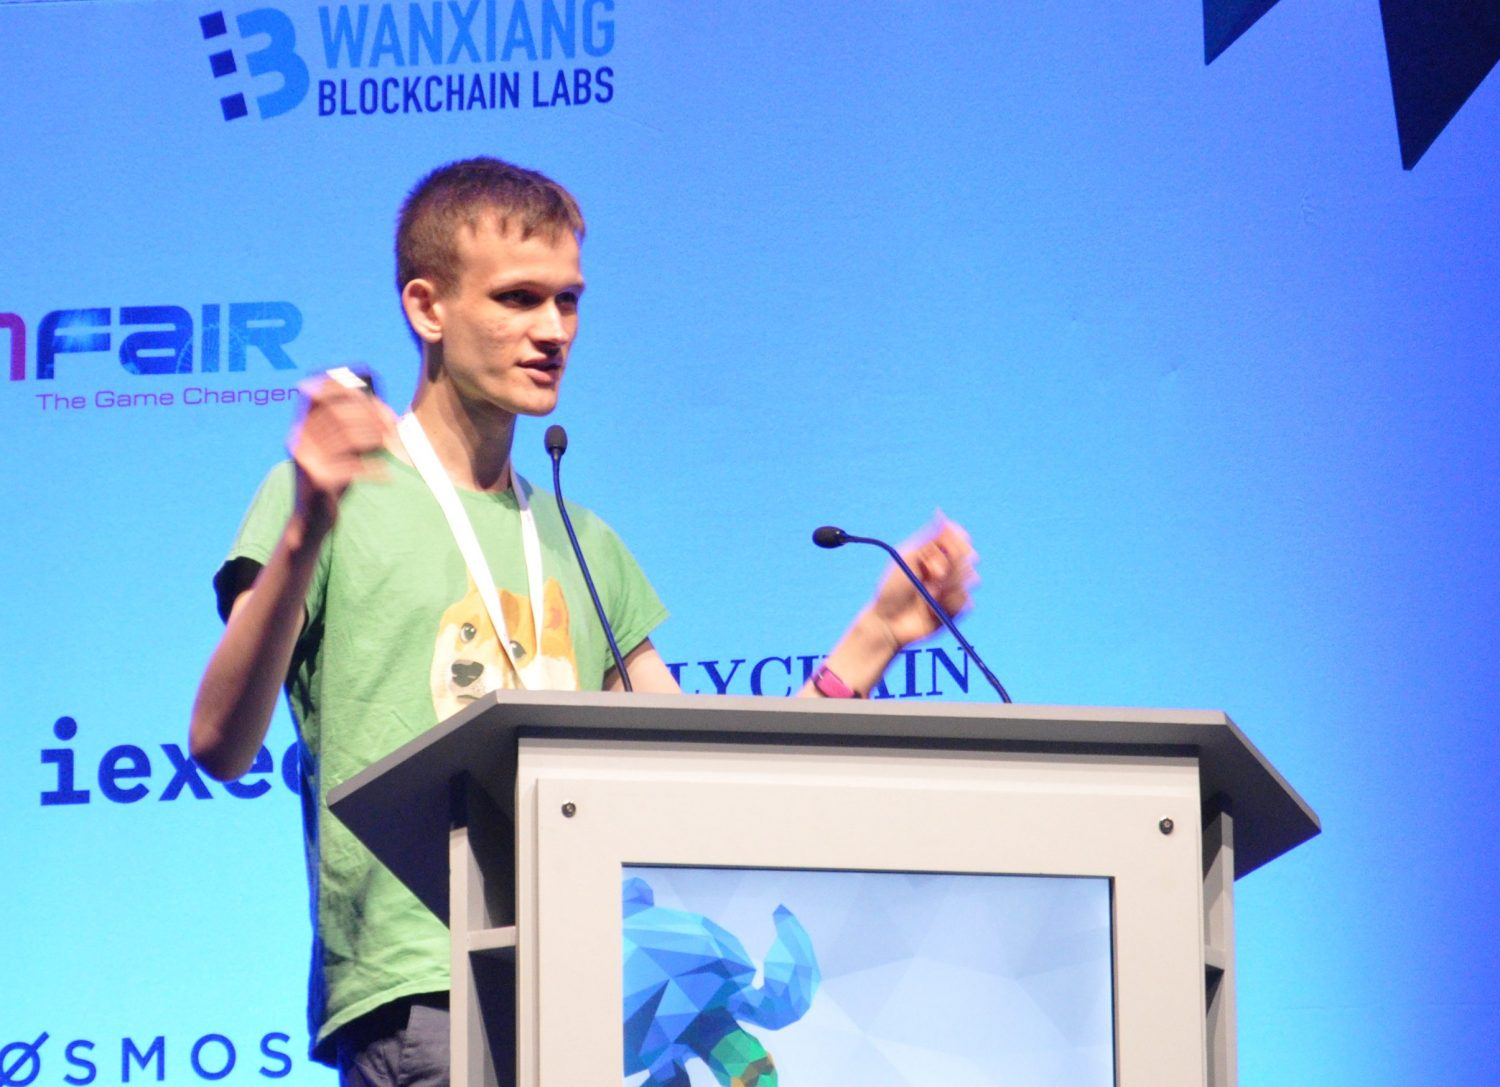 coindesk.com - Buterin Proposal Could Turn Ethereum Staking Into $160 Million Industry